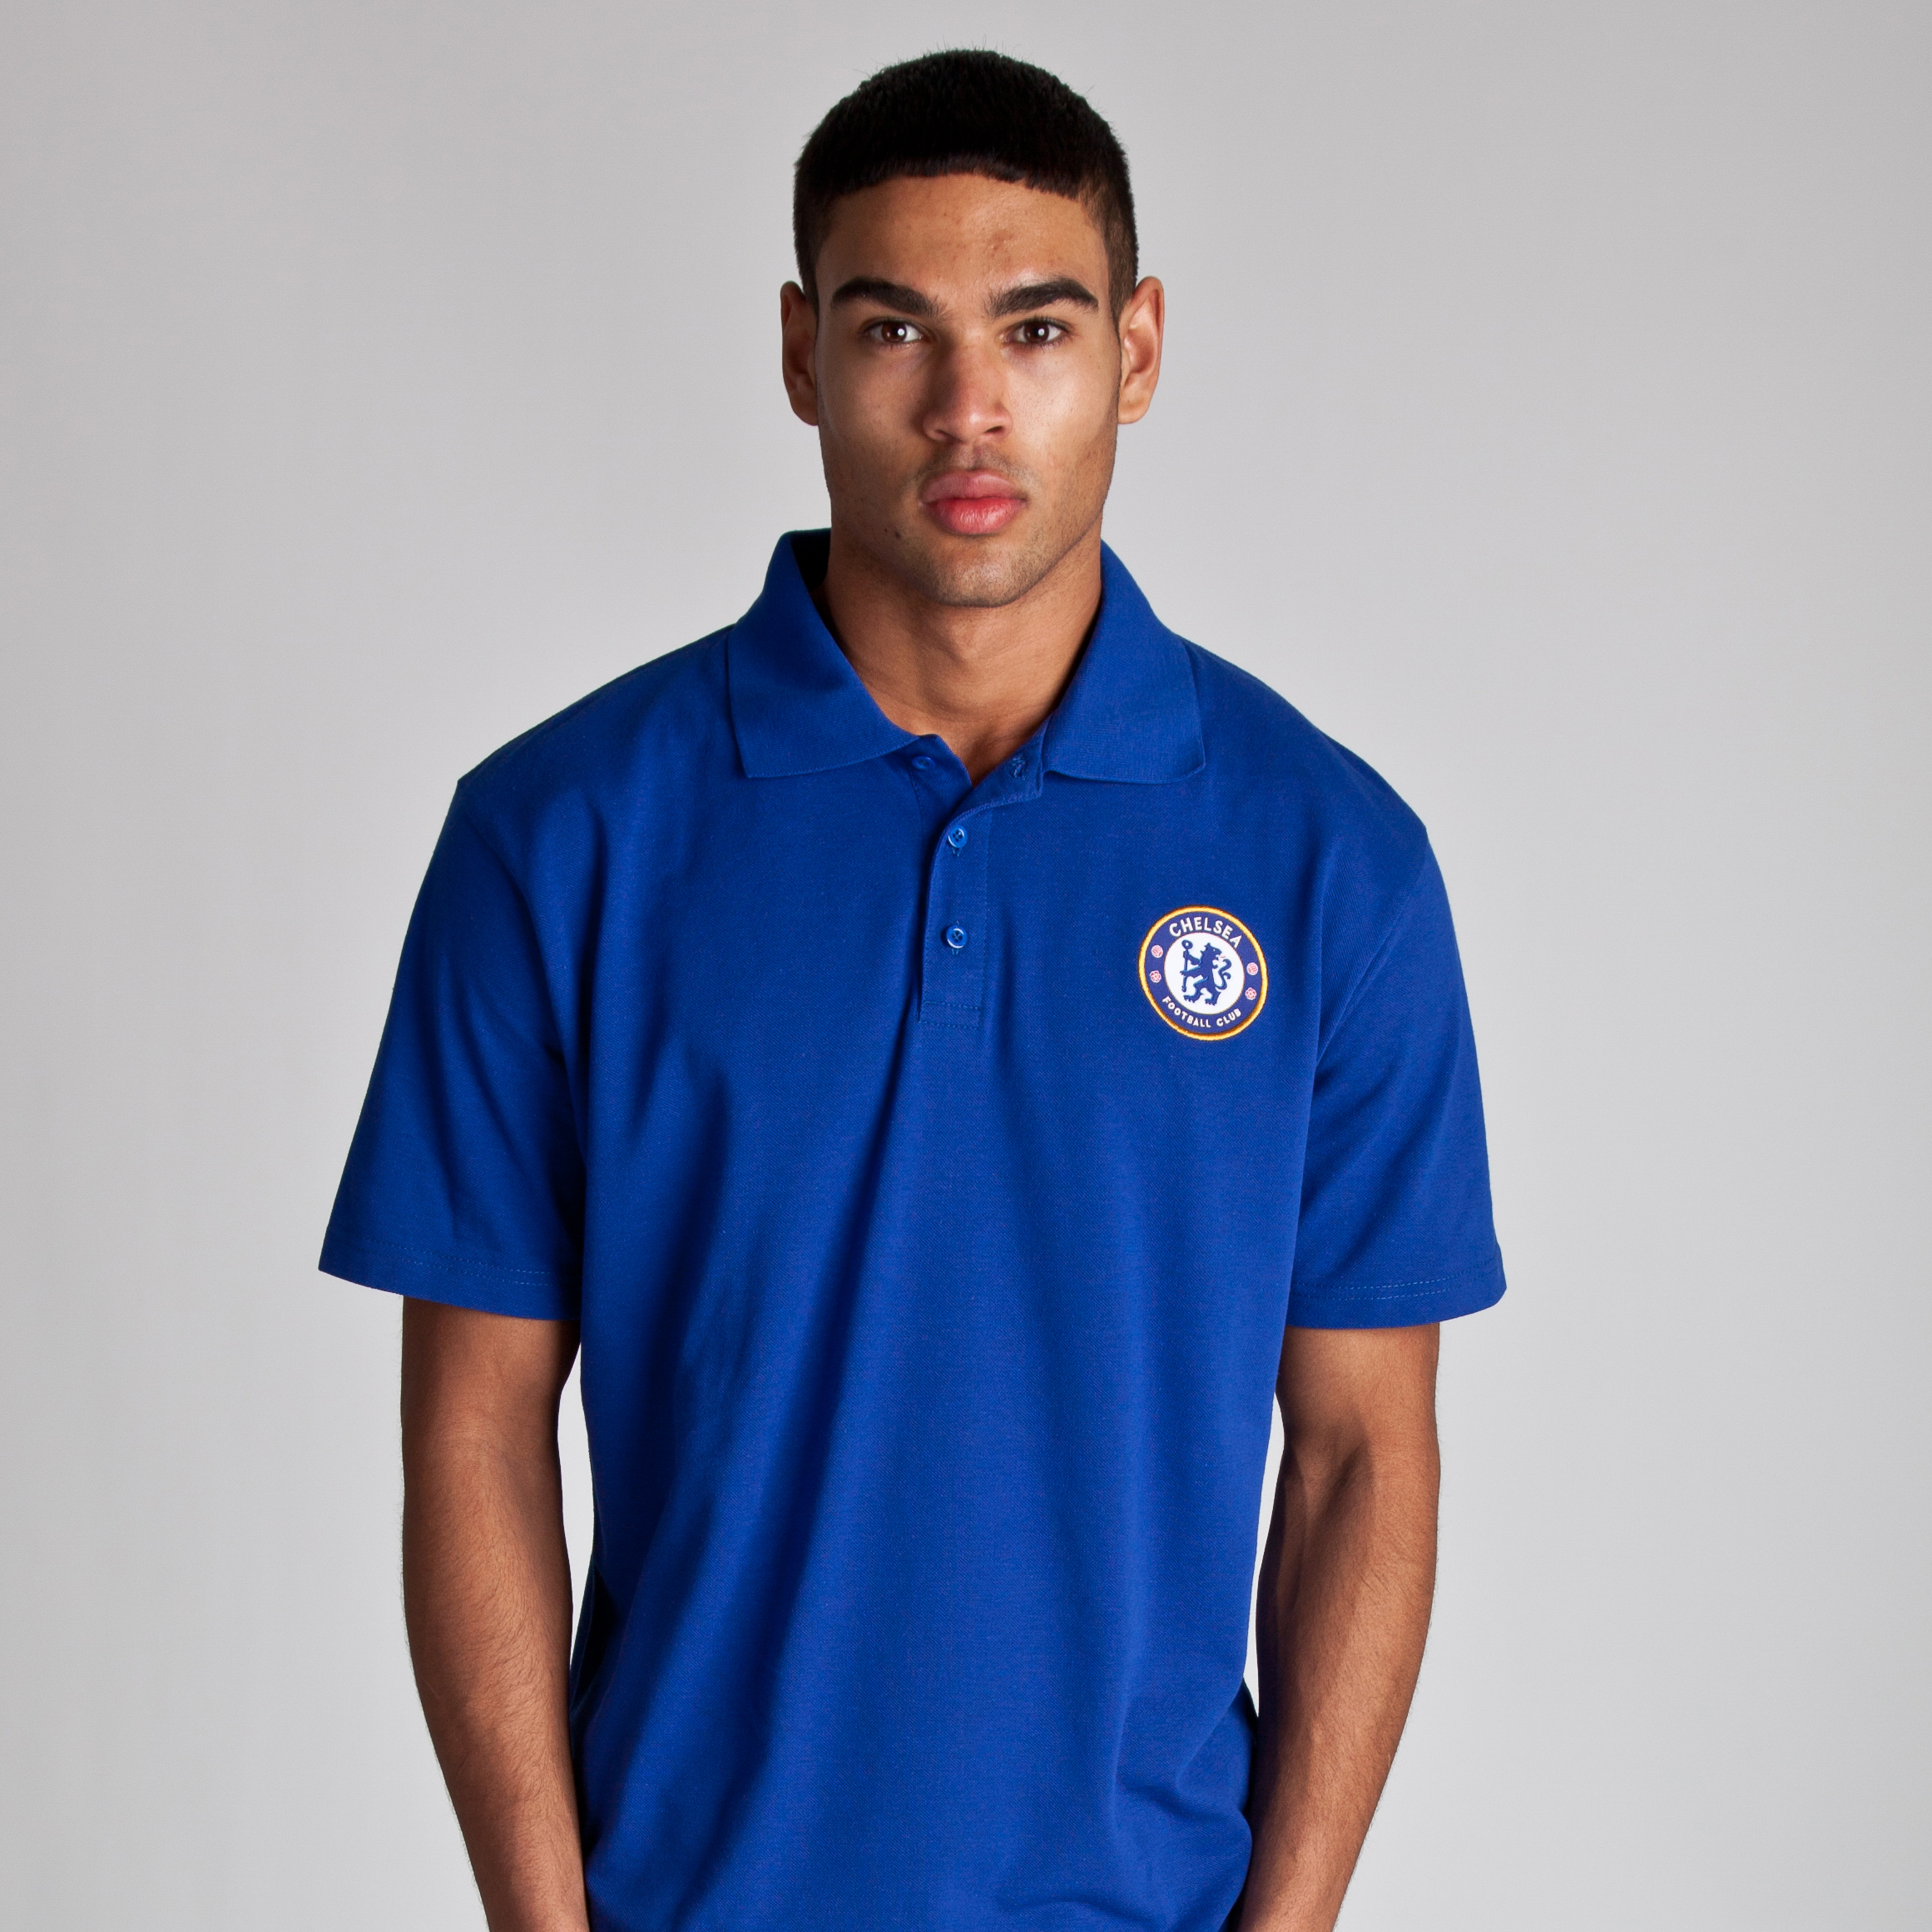 Chelsea Basic Crest Polo - Royal